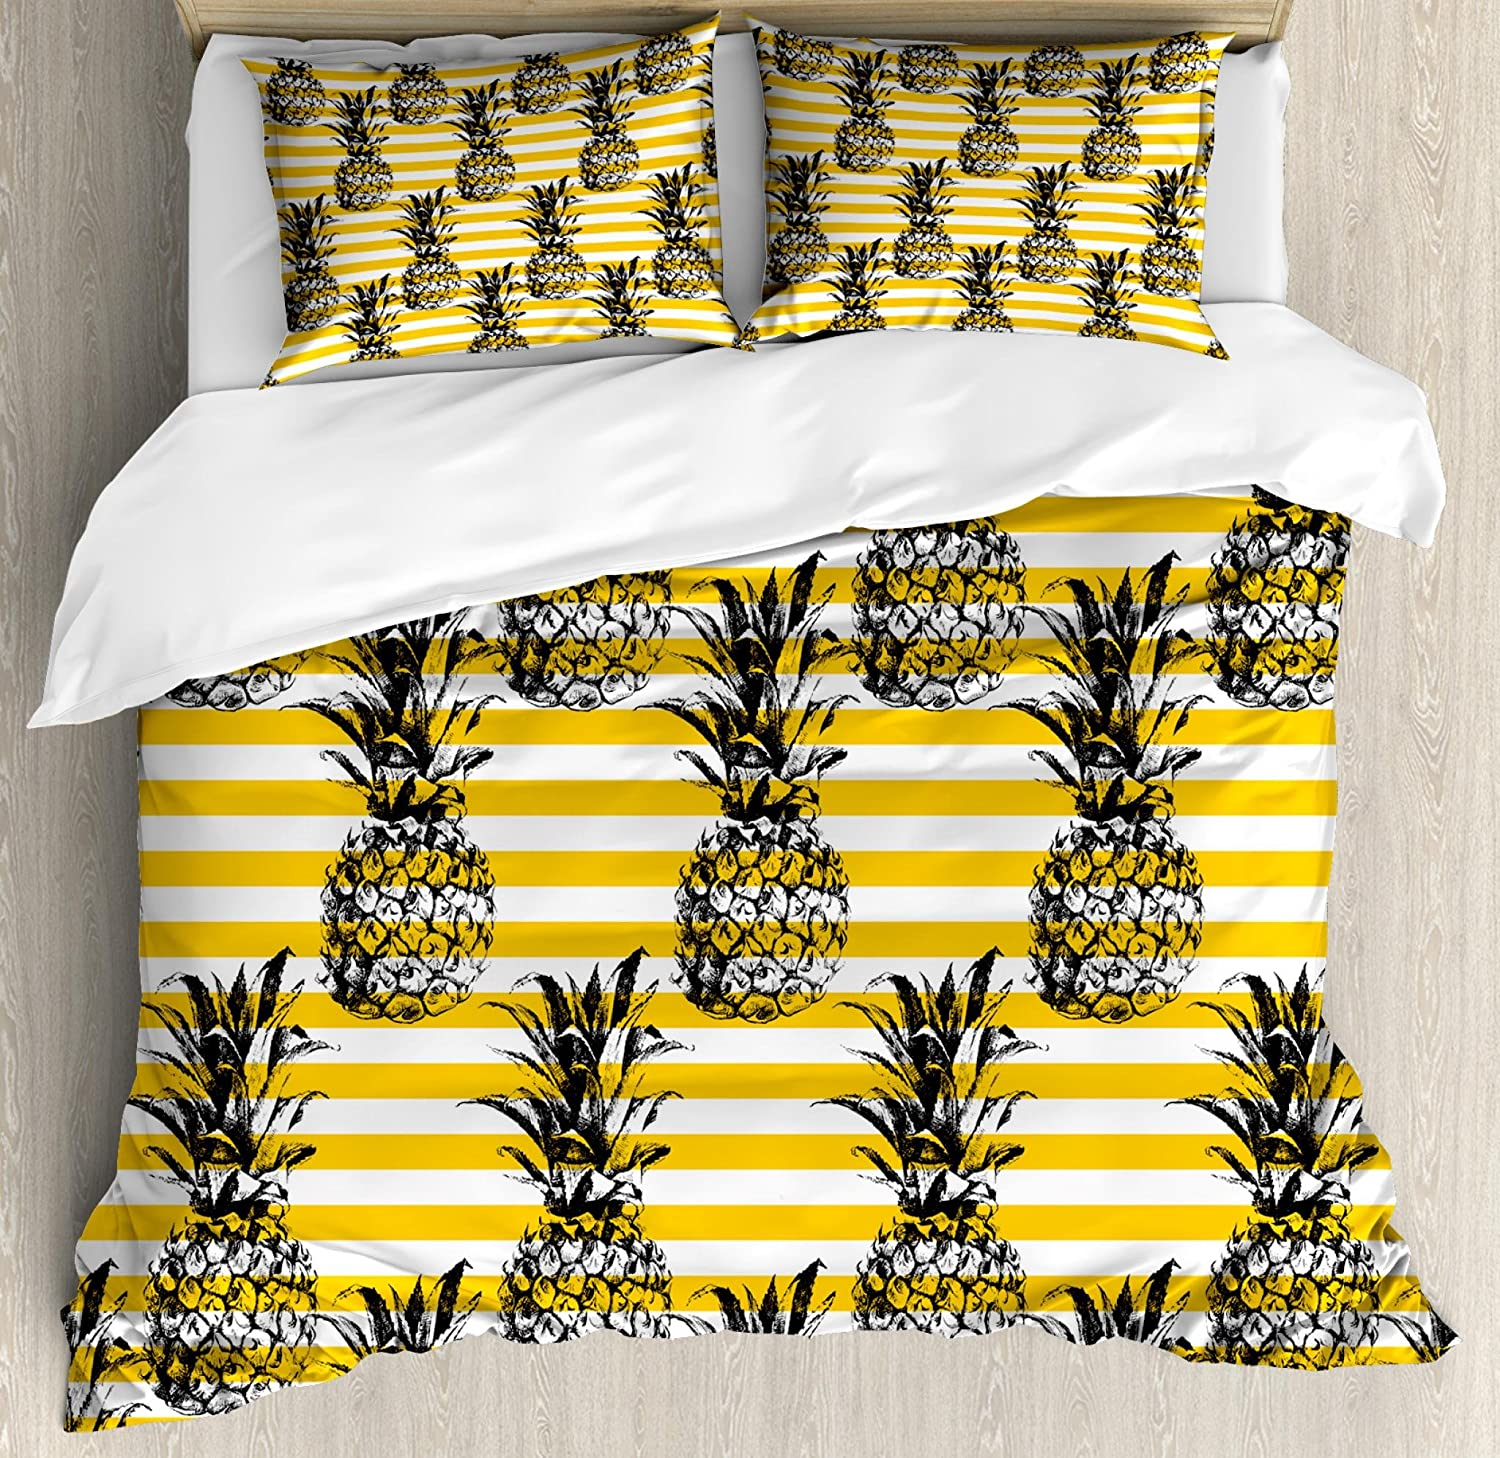 Ambesonne Grunge Duvet Cover Set Queen Size, Retro Striped Background with Pineapple Vintage Hippie Graphic, Decorative 3 Piece Bedding Set with 2 Pillow Shams, Yellow Black